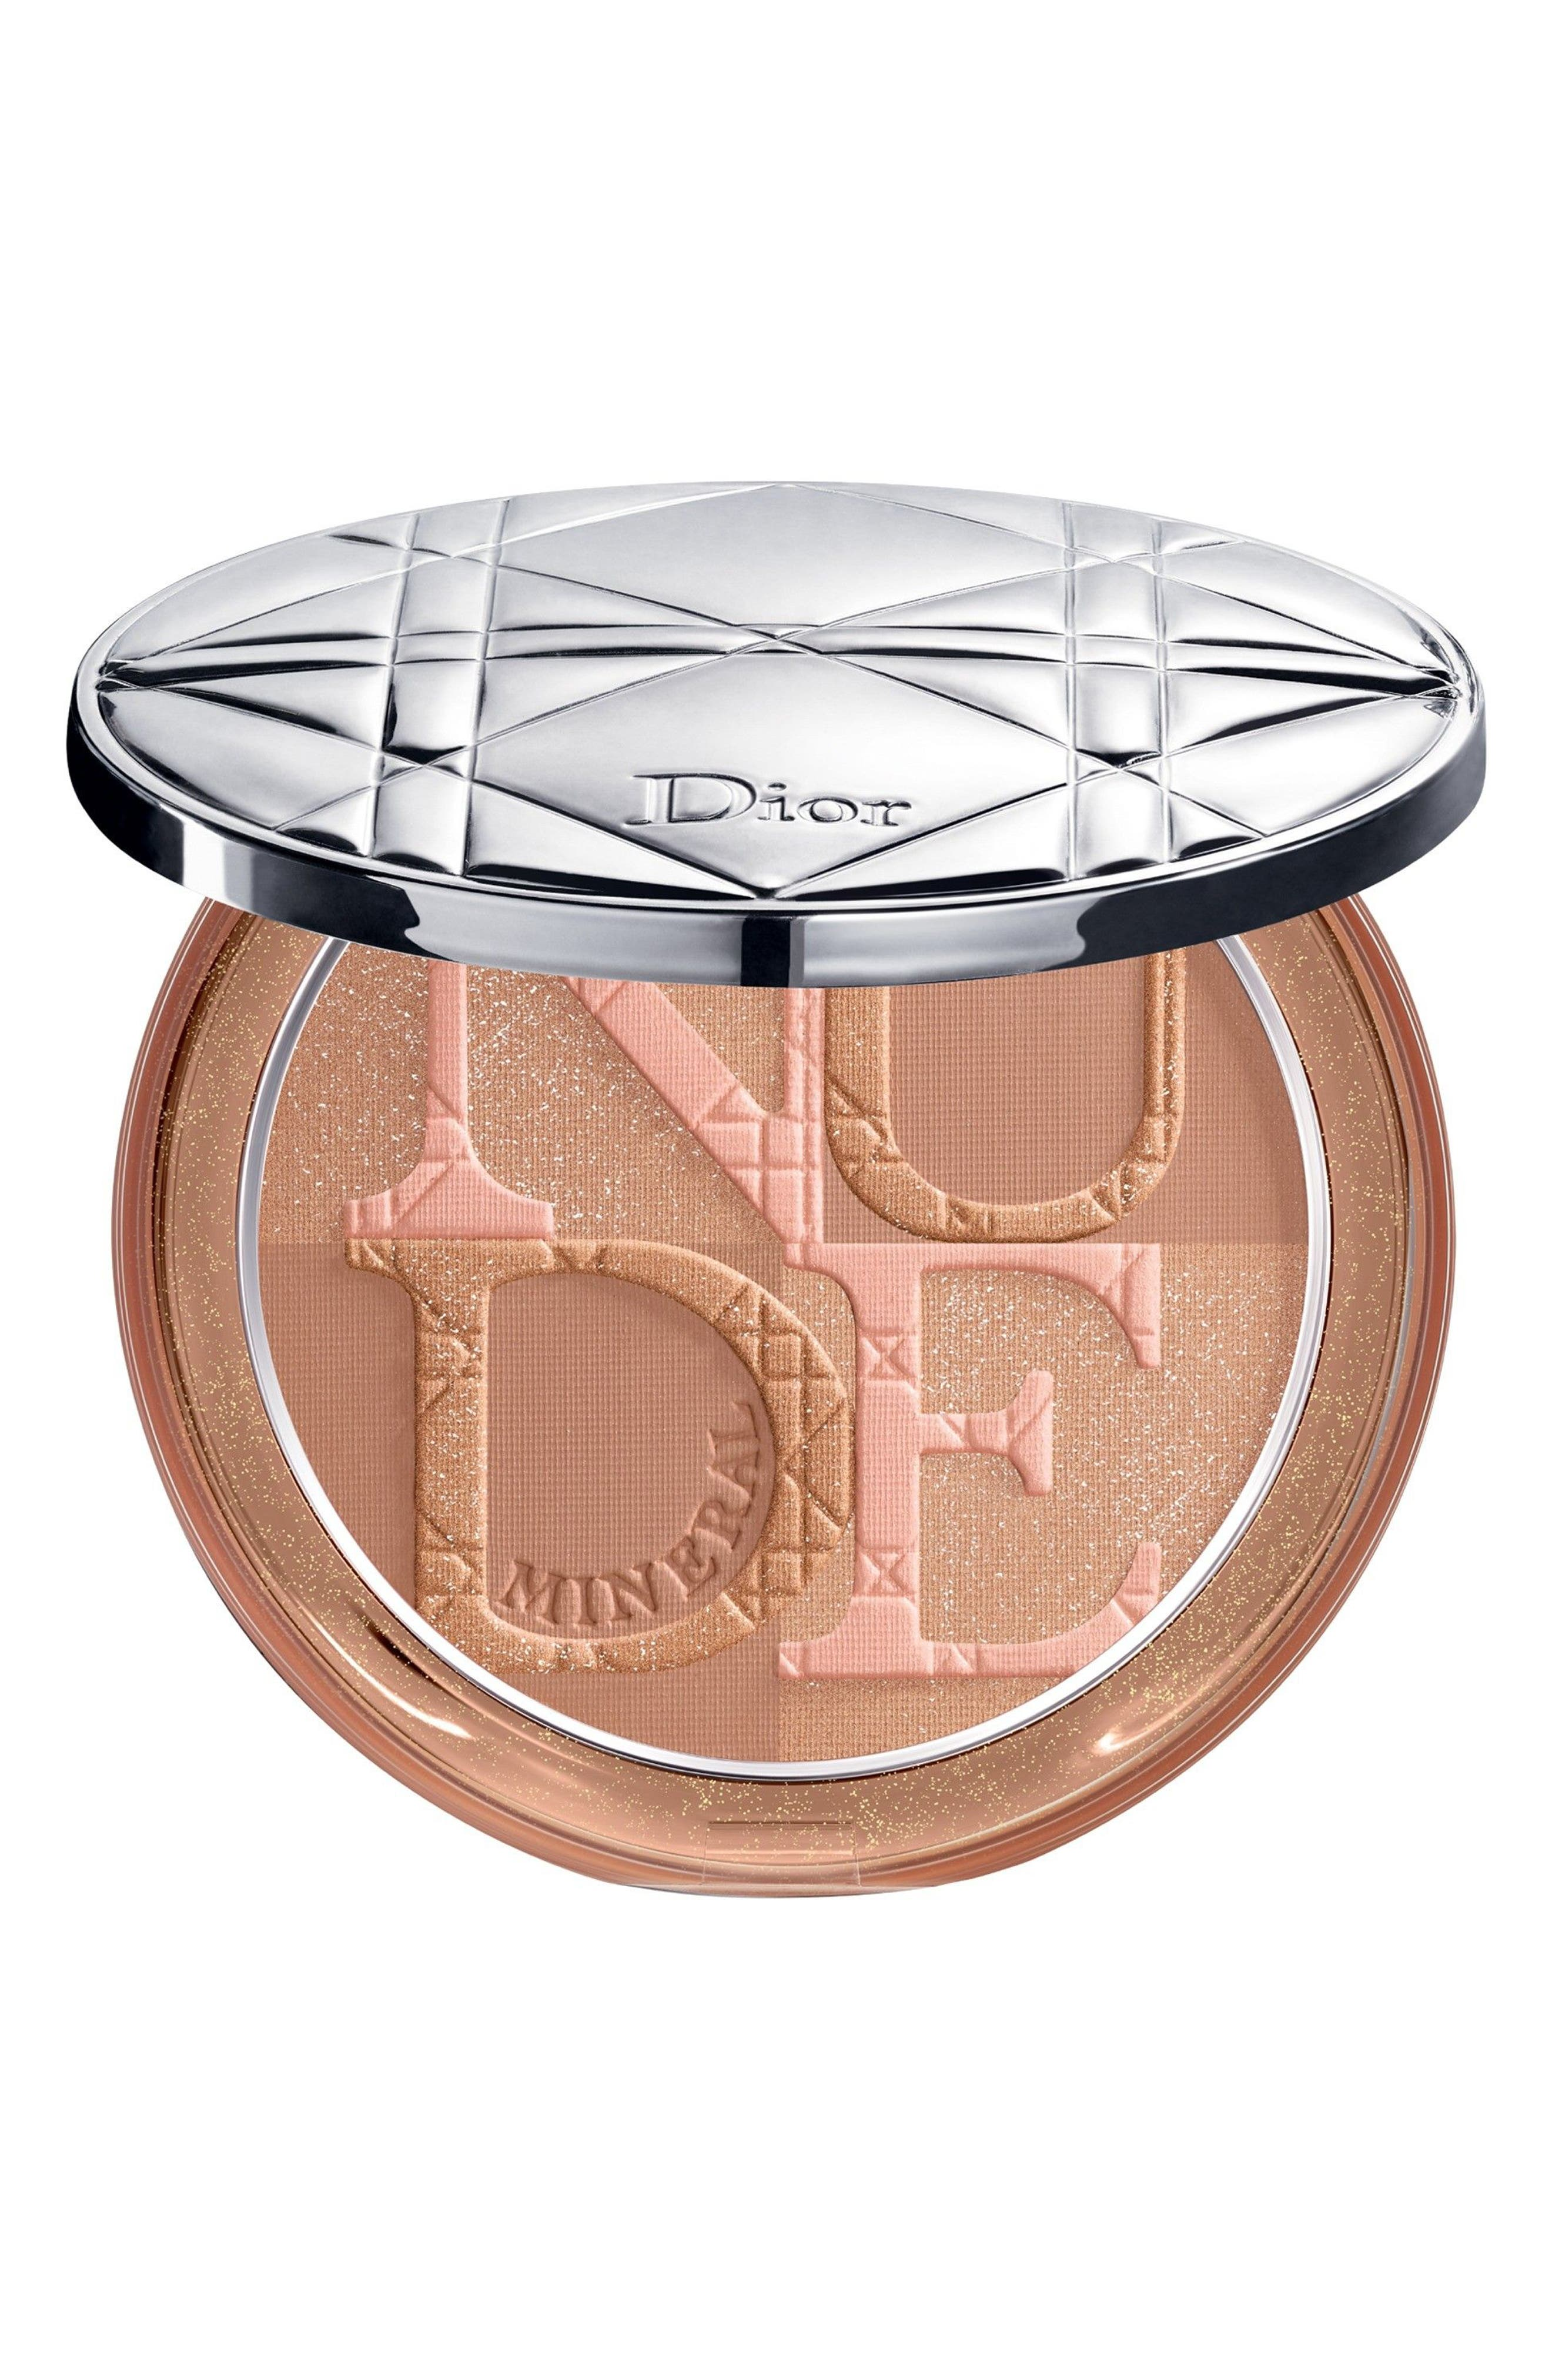 Diorskin Mineral Nude Bronze Powder,                             Main thumbnail 1, color,                             002 Soft Sunlight